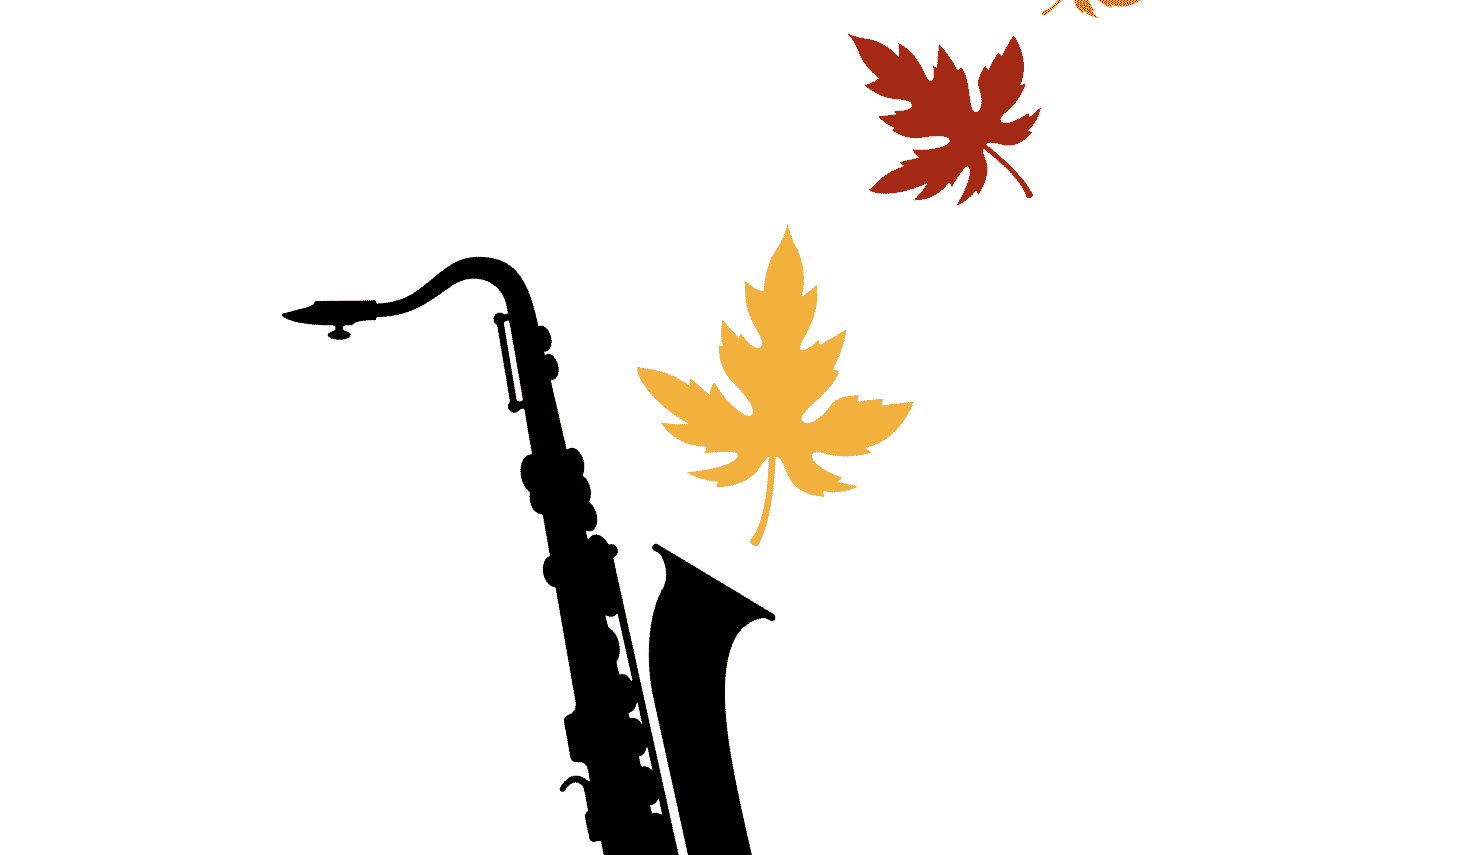 Black saxophone with fall colored leaves coming out the top.